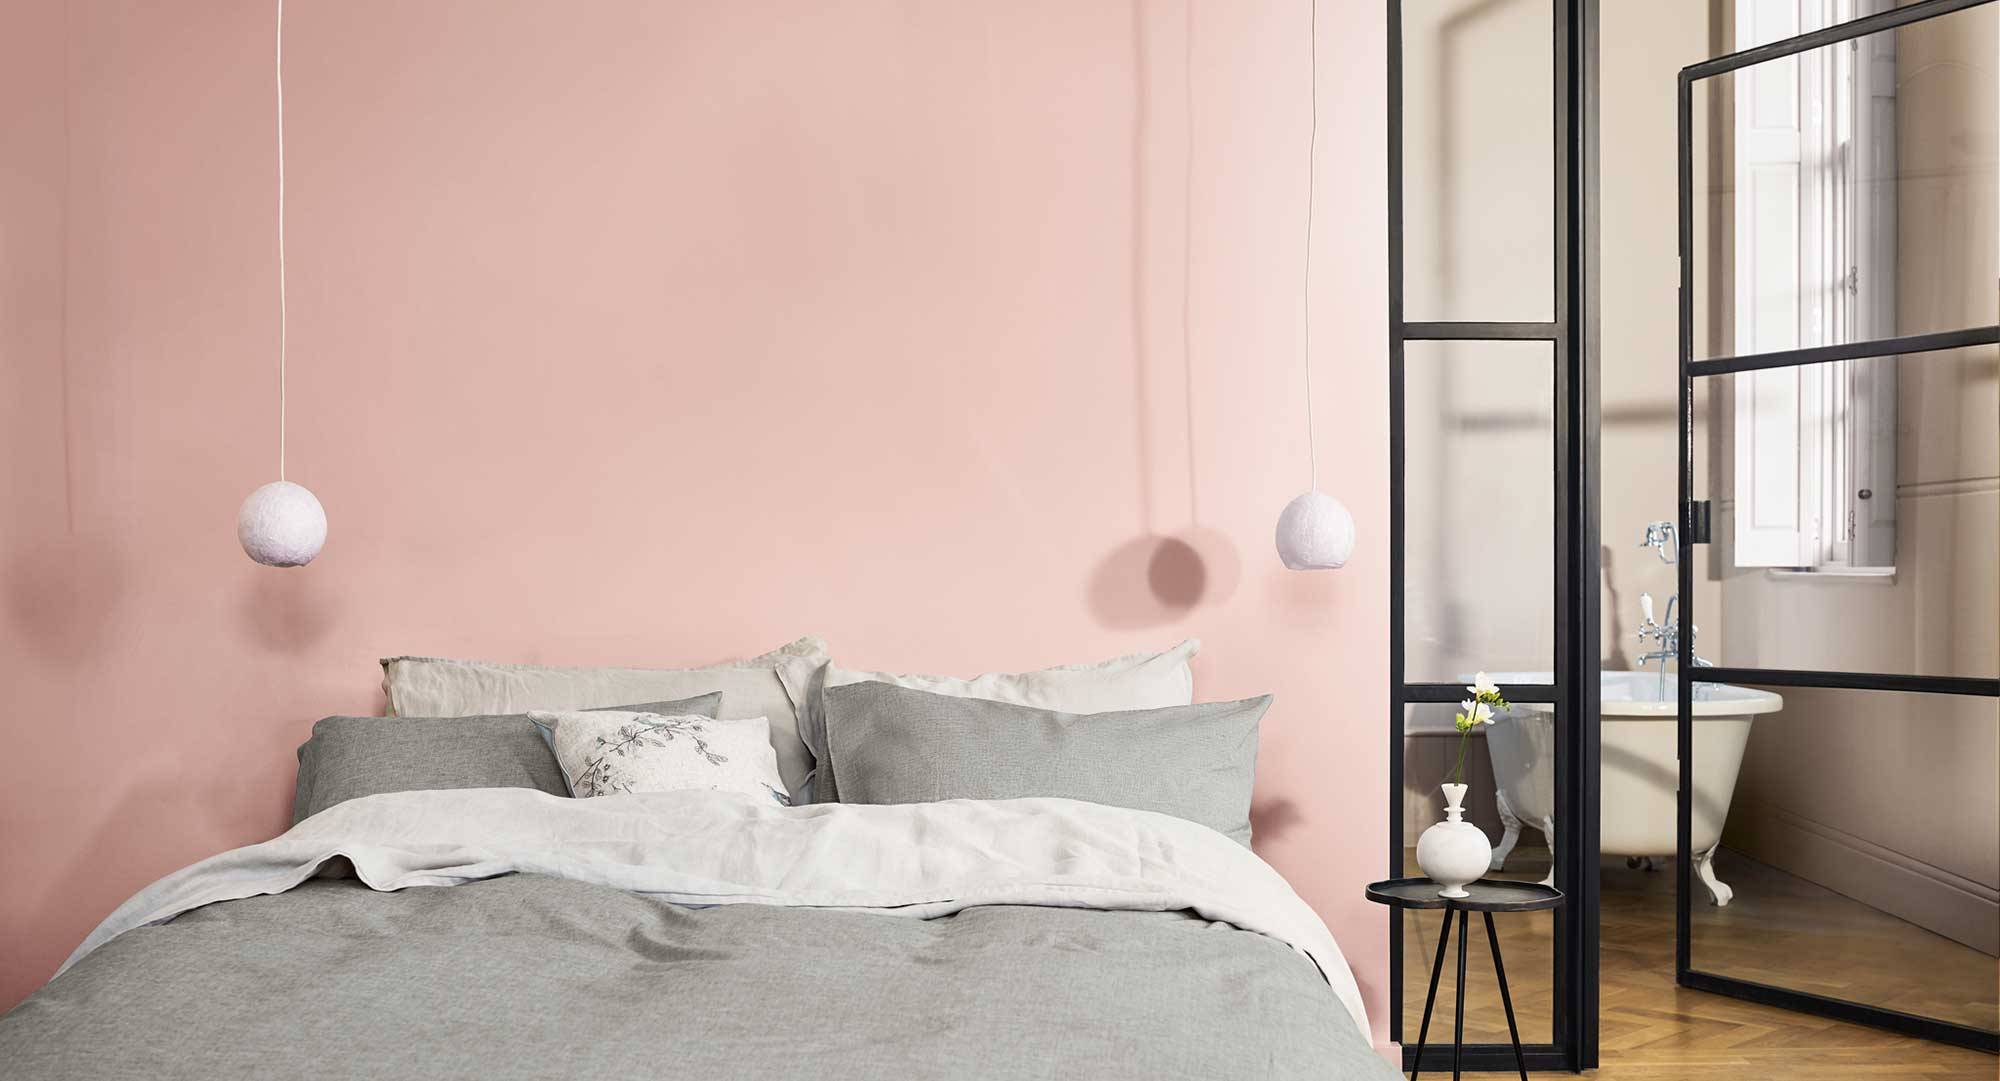 Dulux-Colour-Futures-Colour-of-the-Year-2019-A-place-to-dream-Bedroom-Inspiration-Global-12. Sueña 5, un rosa entre pastel y empolvado